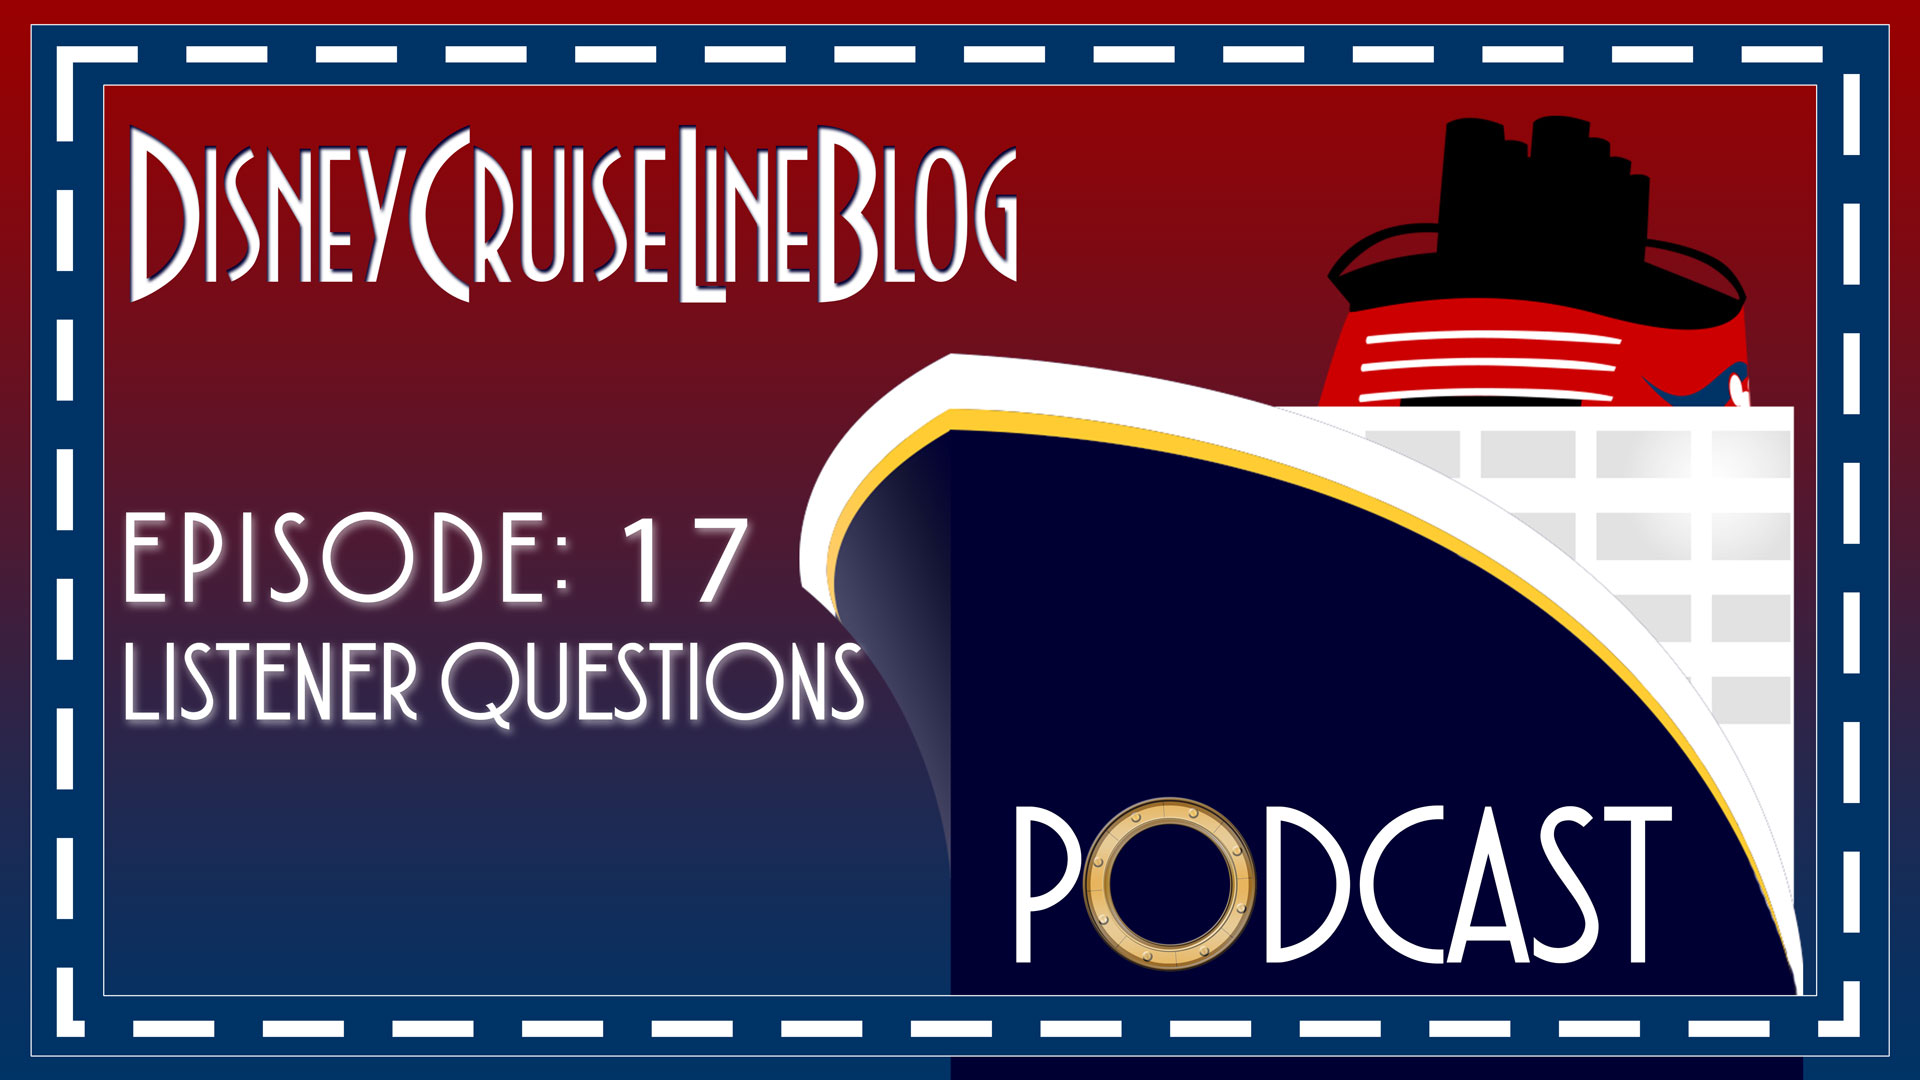 DCL Blog Podcast Episode 17 Listener Questions